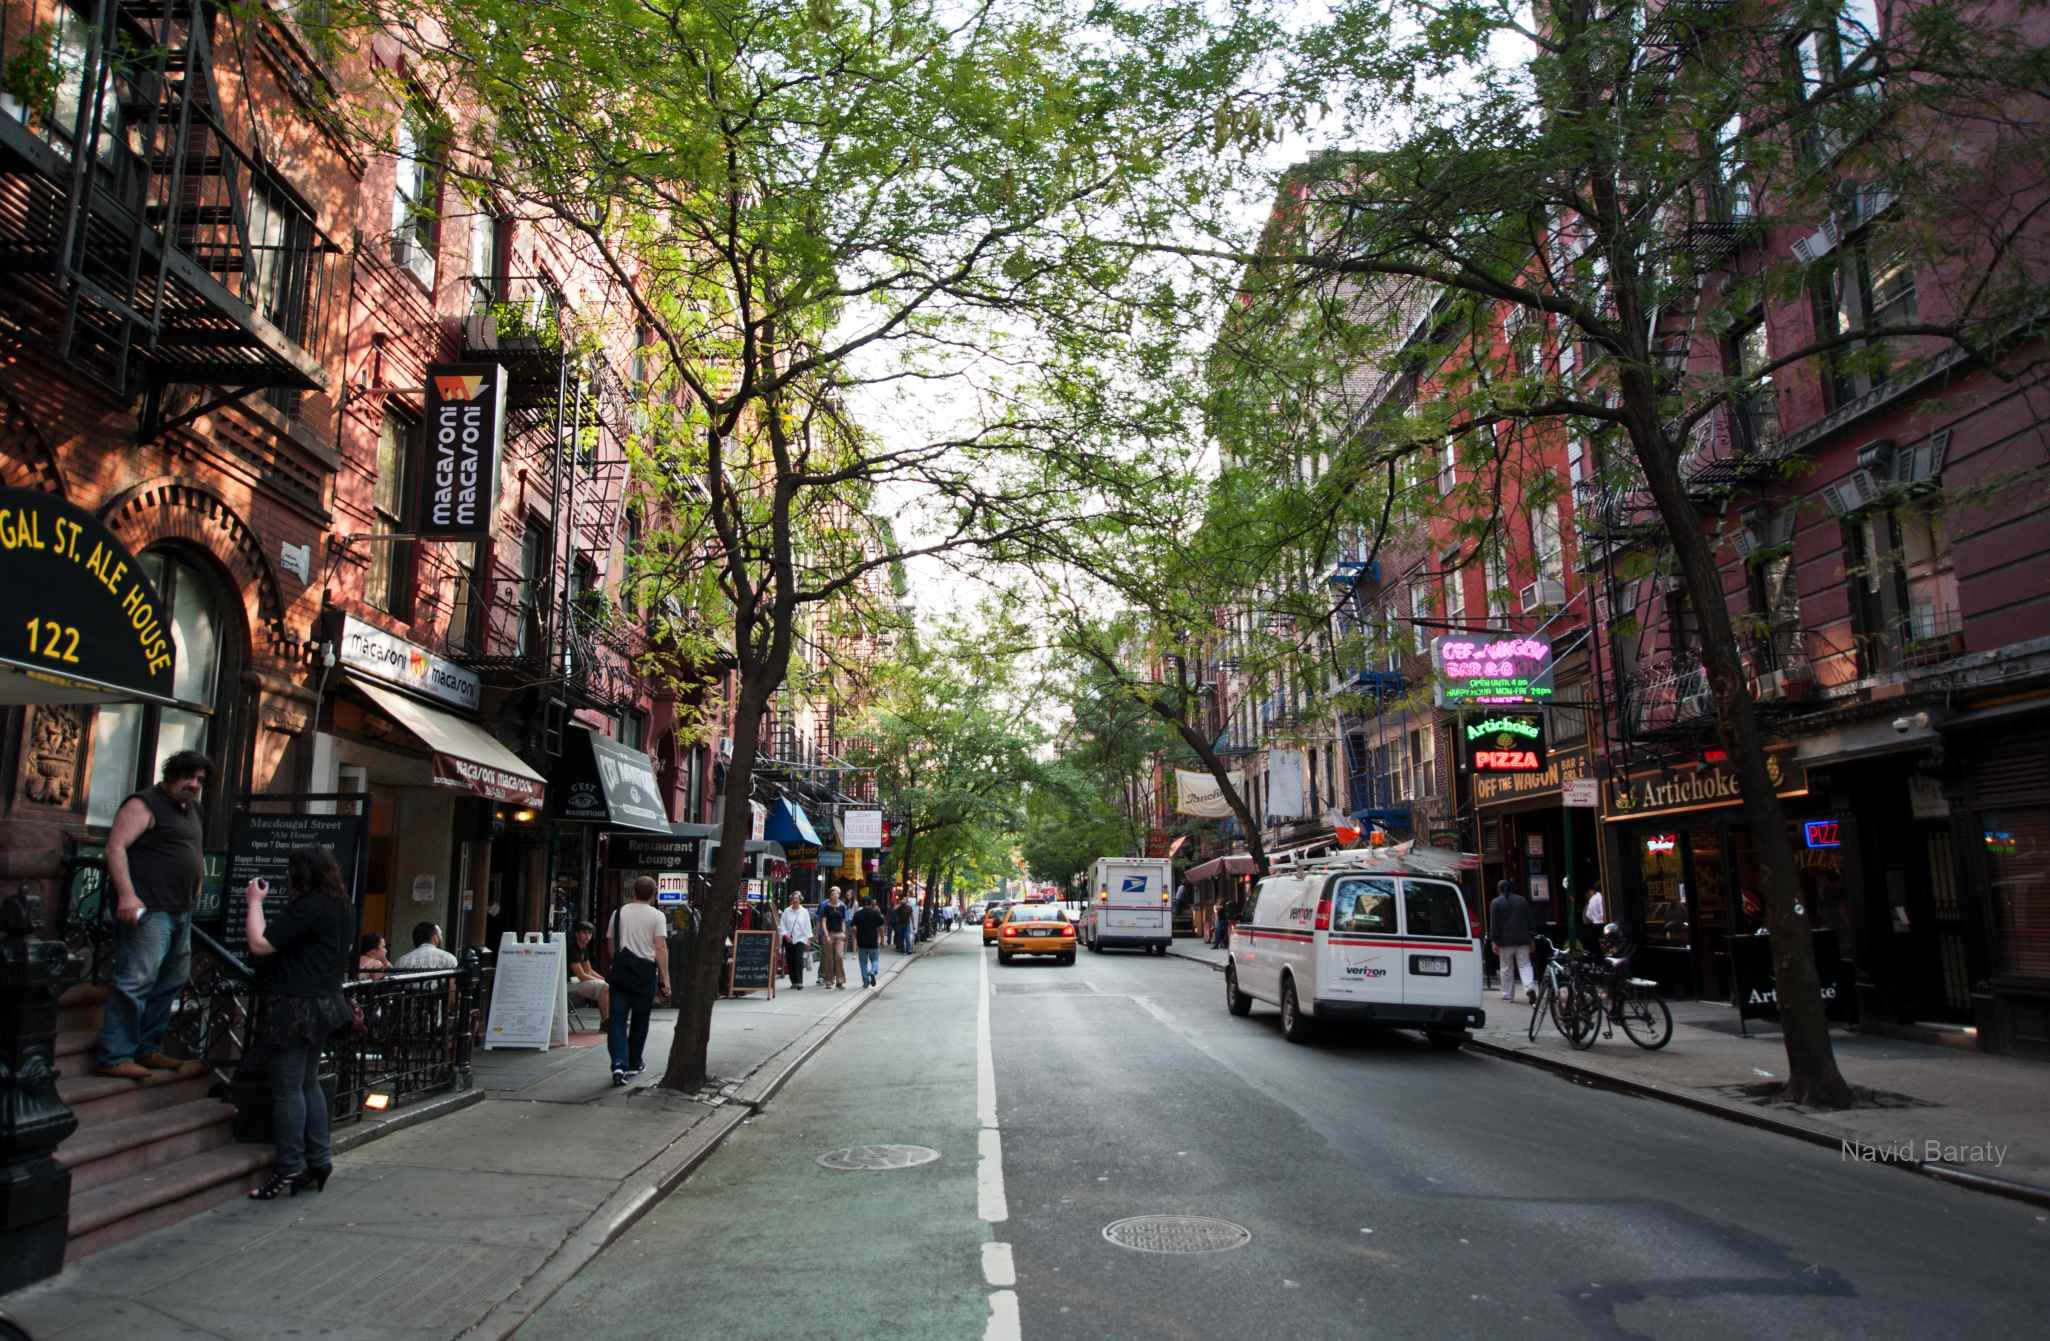 overrated main attractions in nyc greenwich village